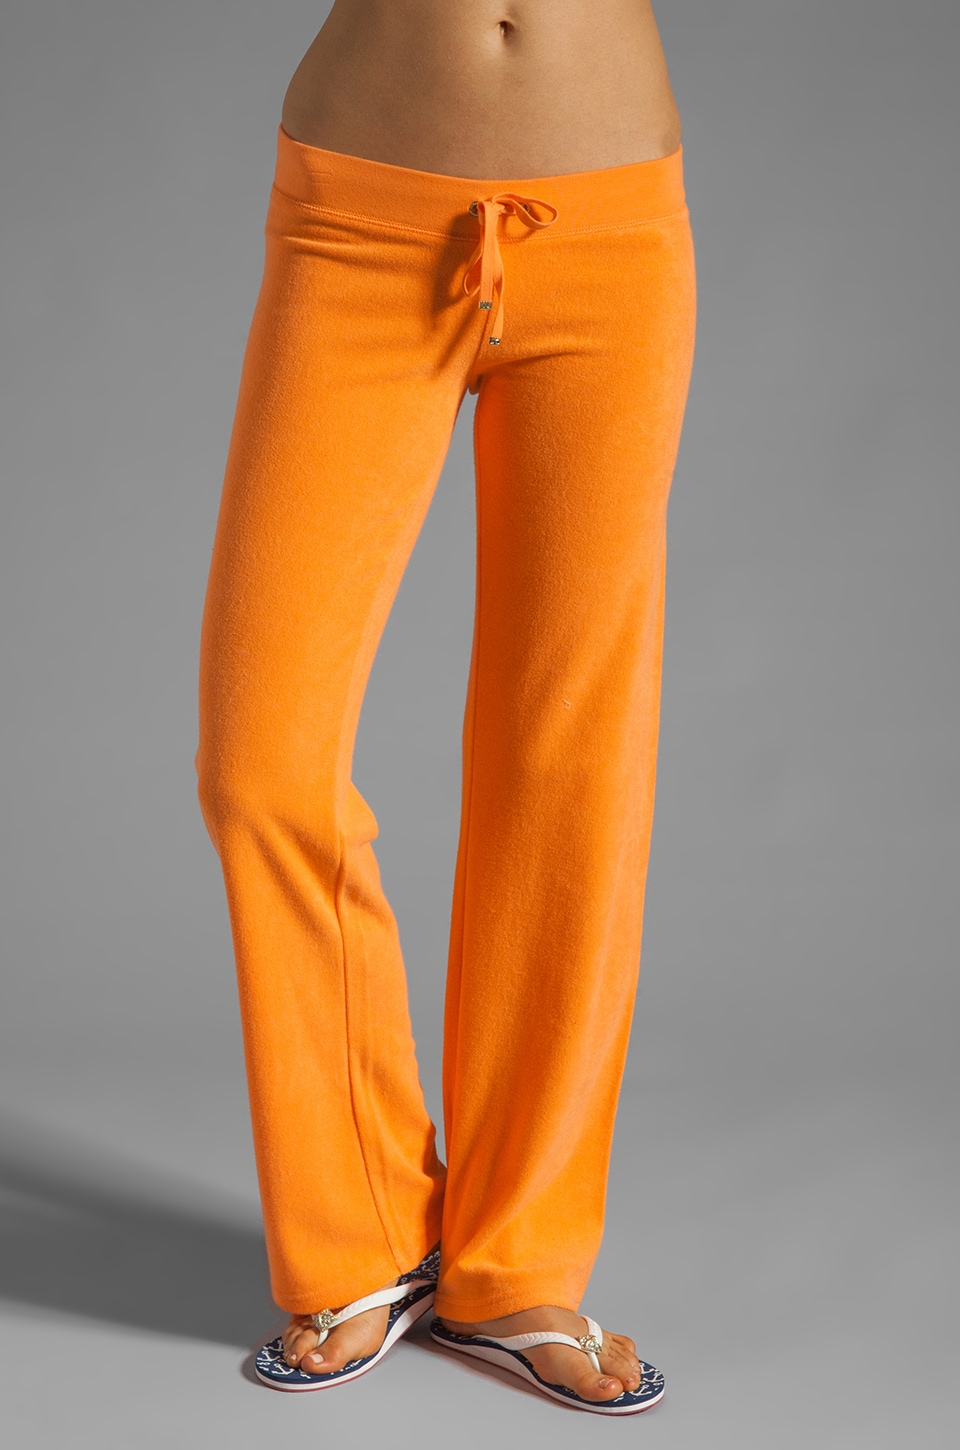 Juicy Couture Terry Original Leg Pant in Tangerine